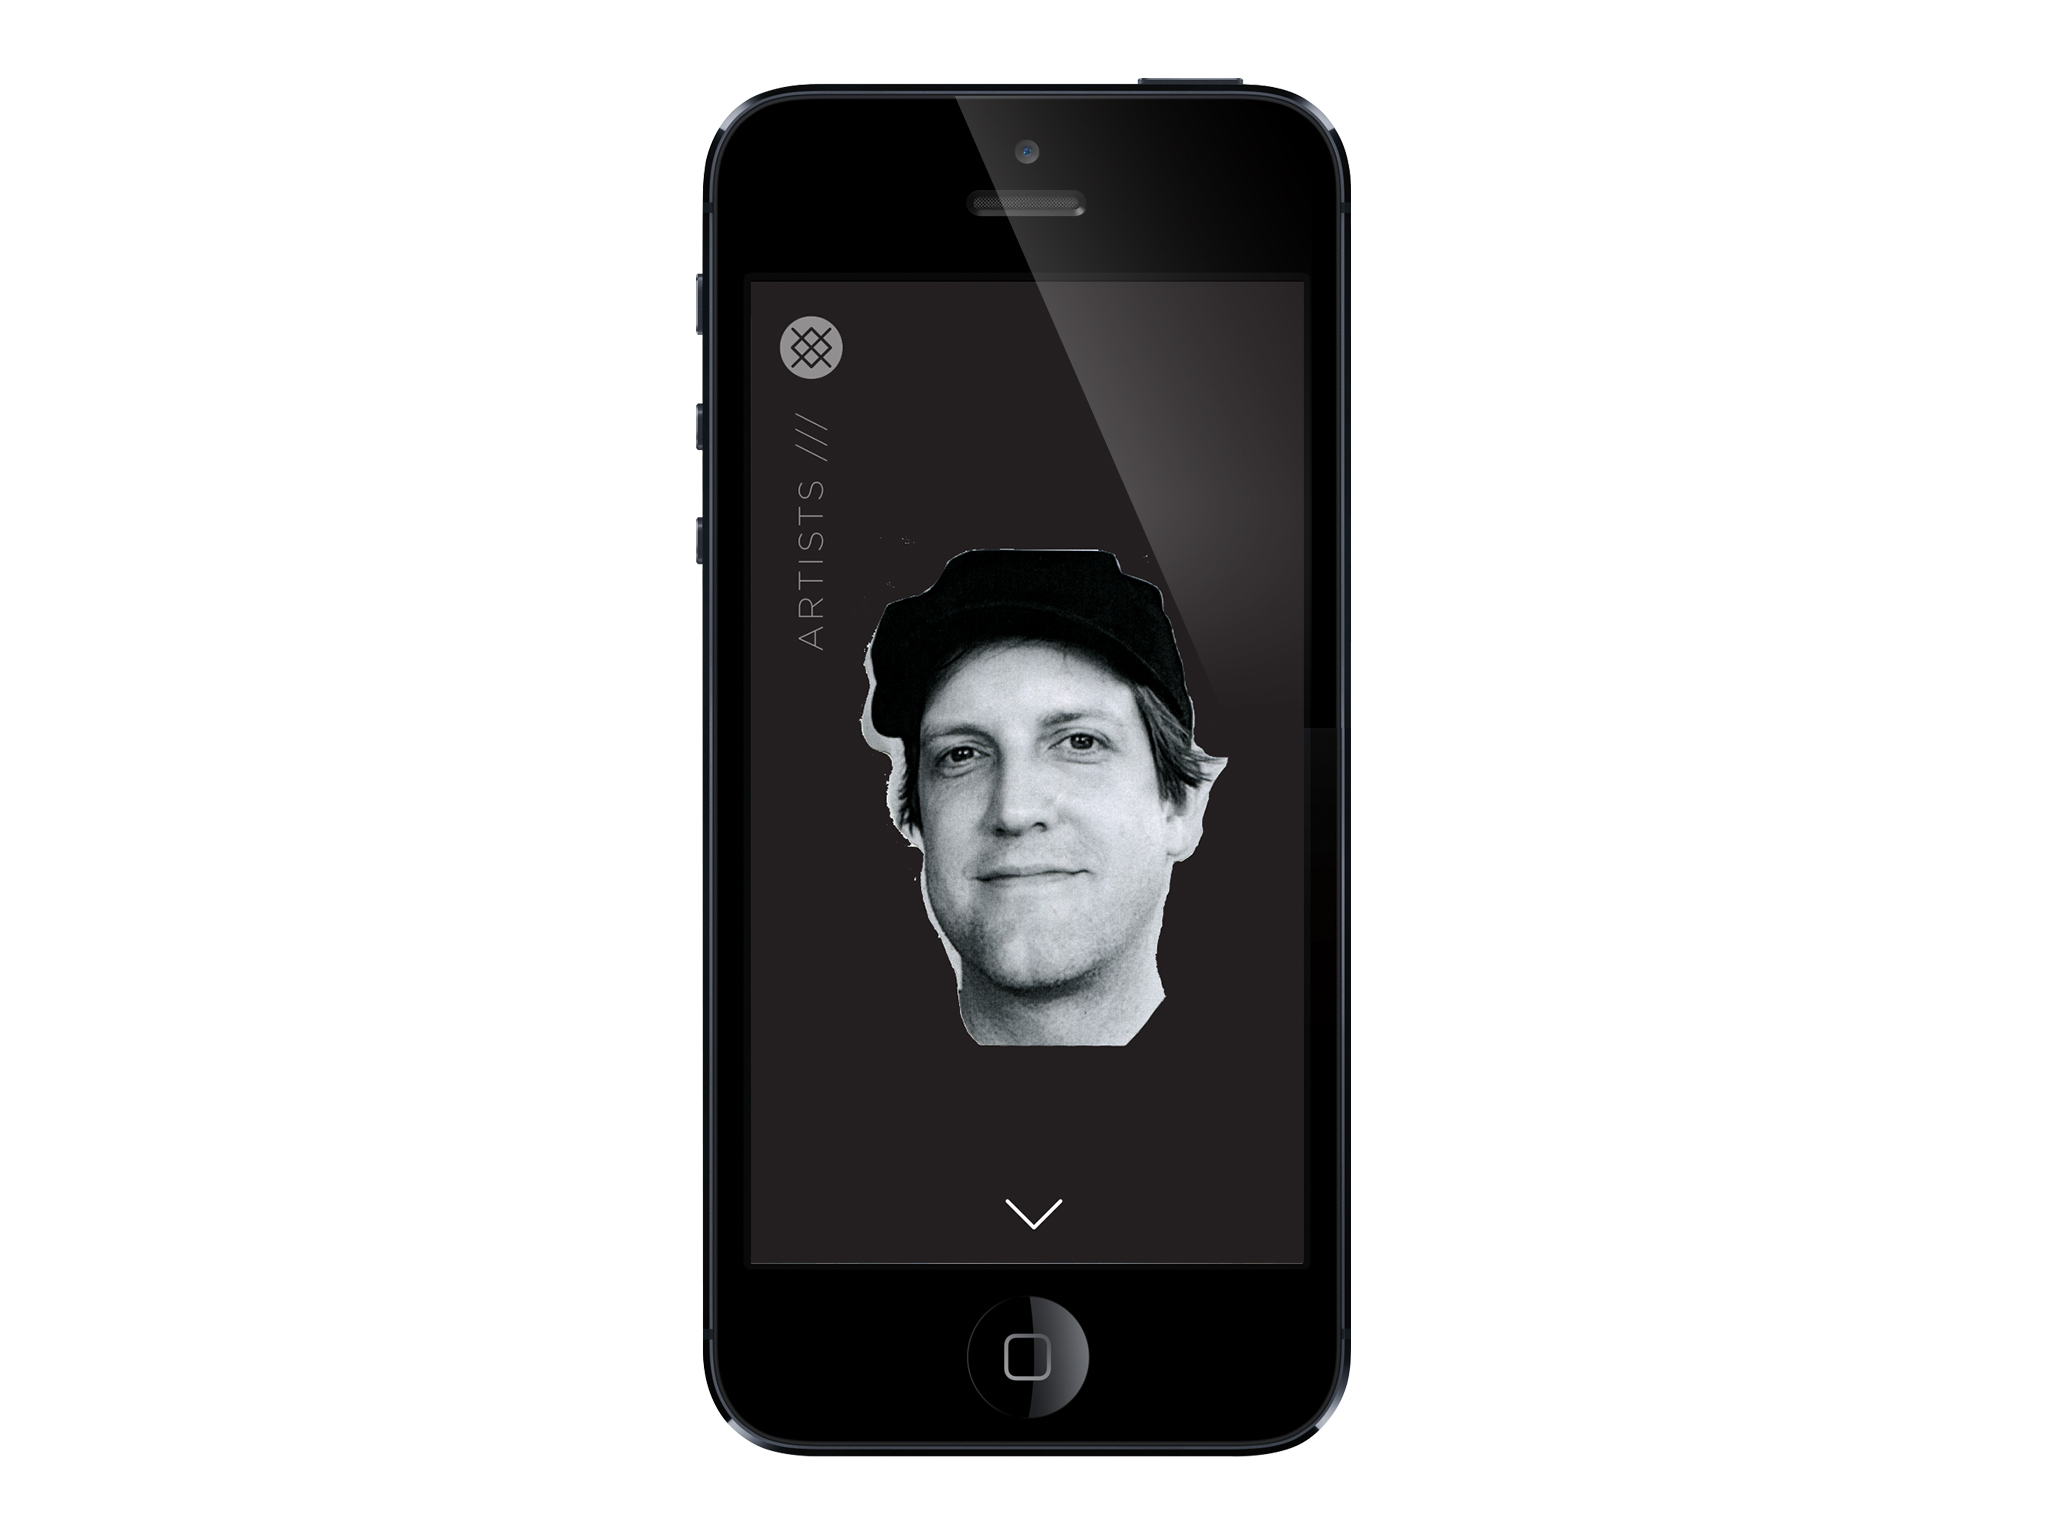 iPhone 5 (vertical) mockup3.jpg